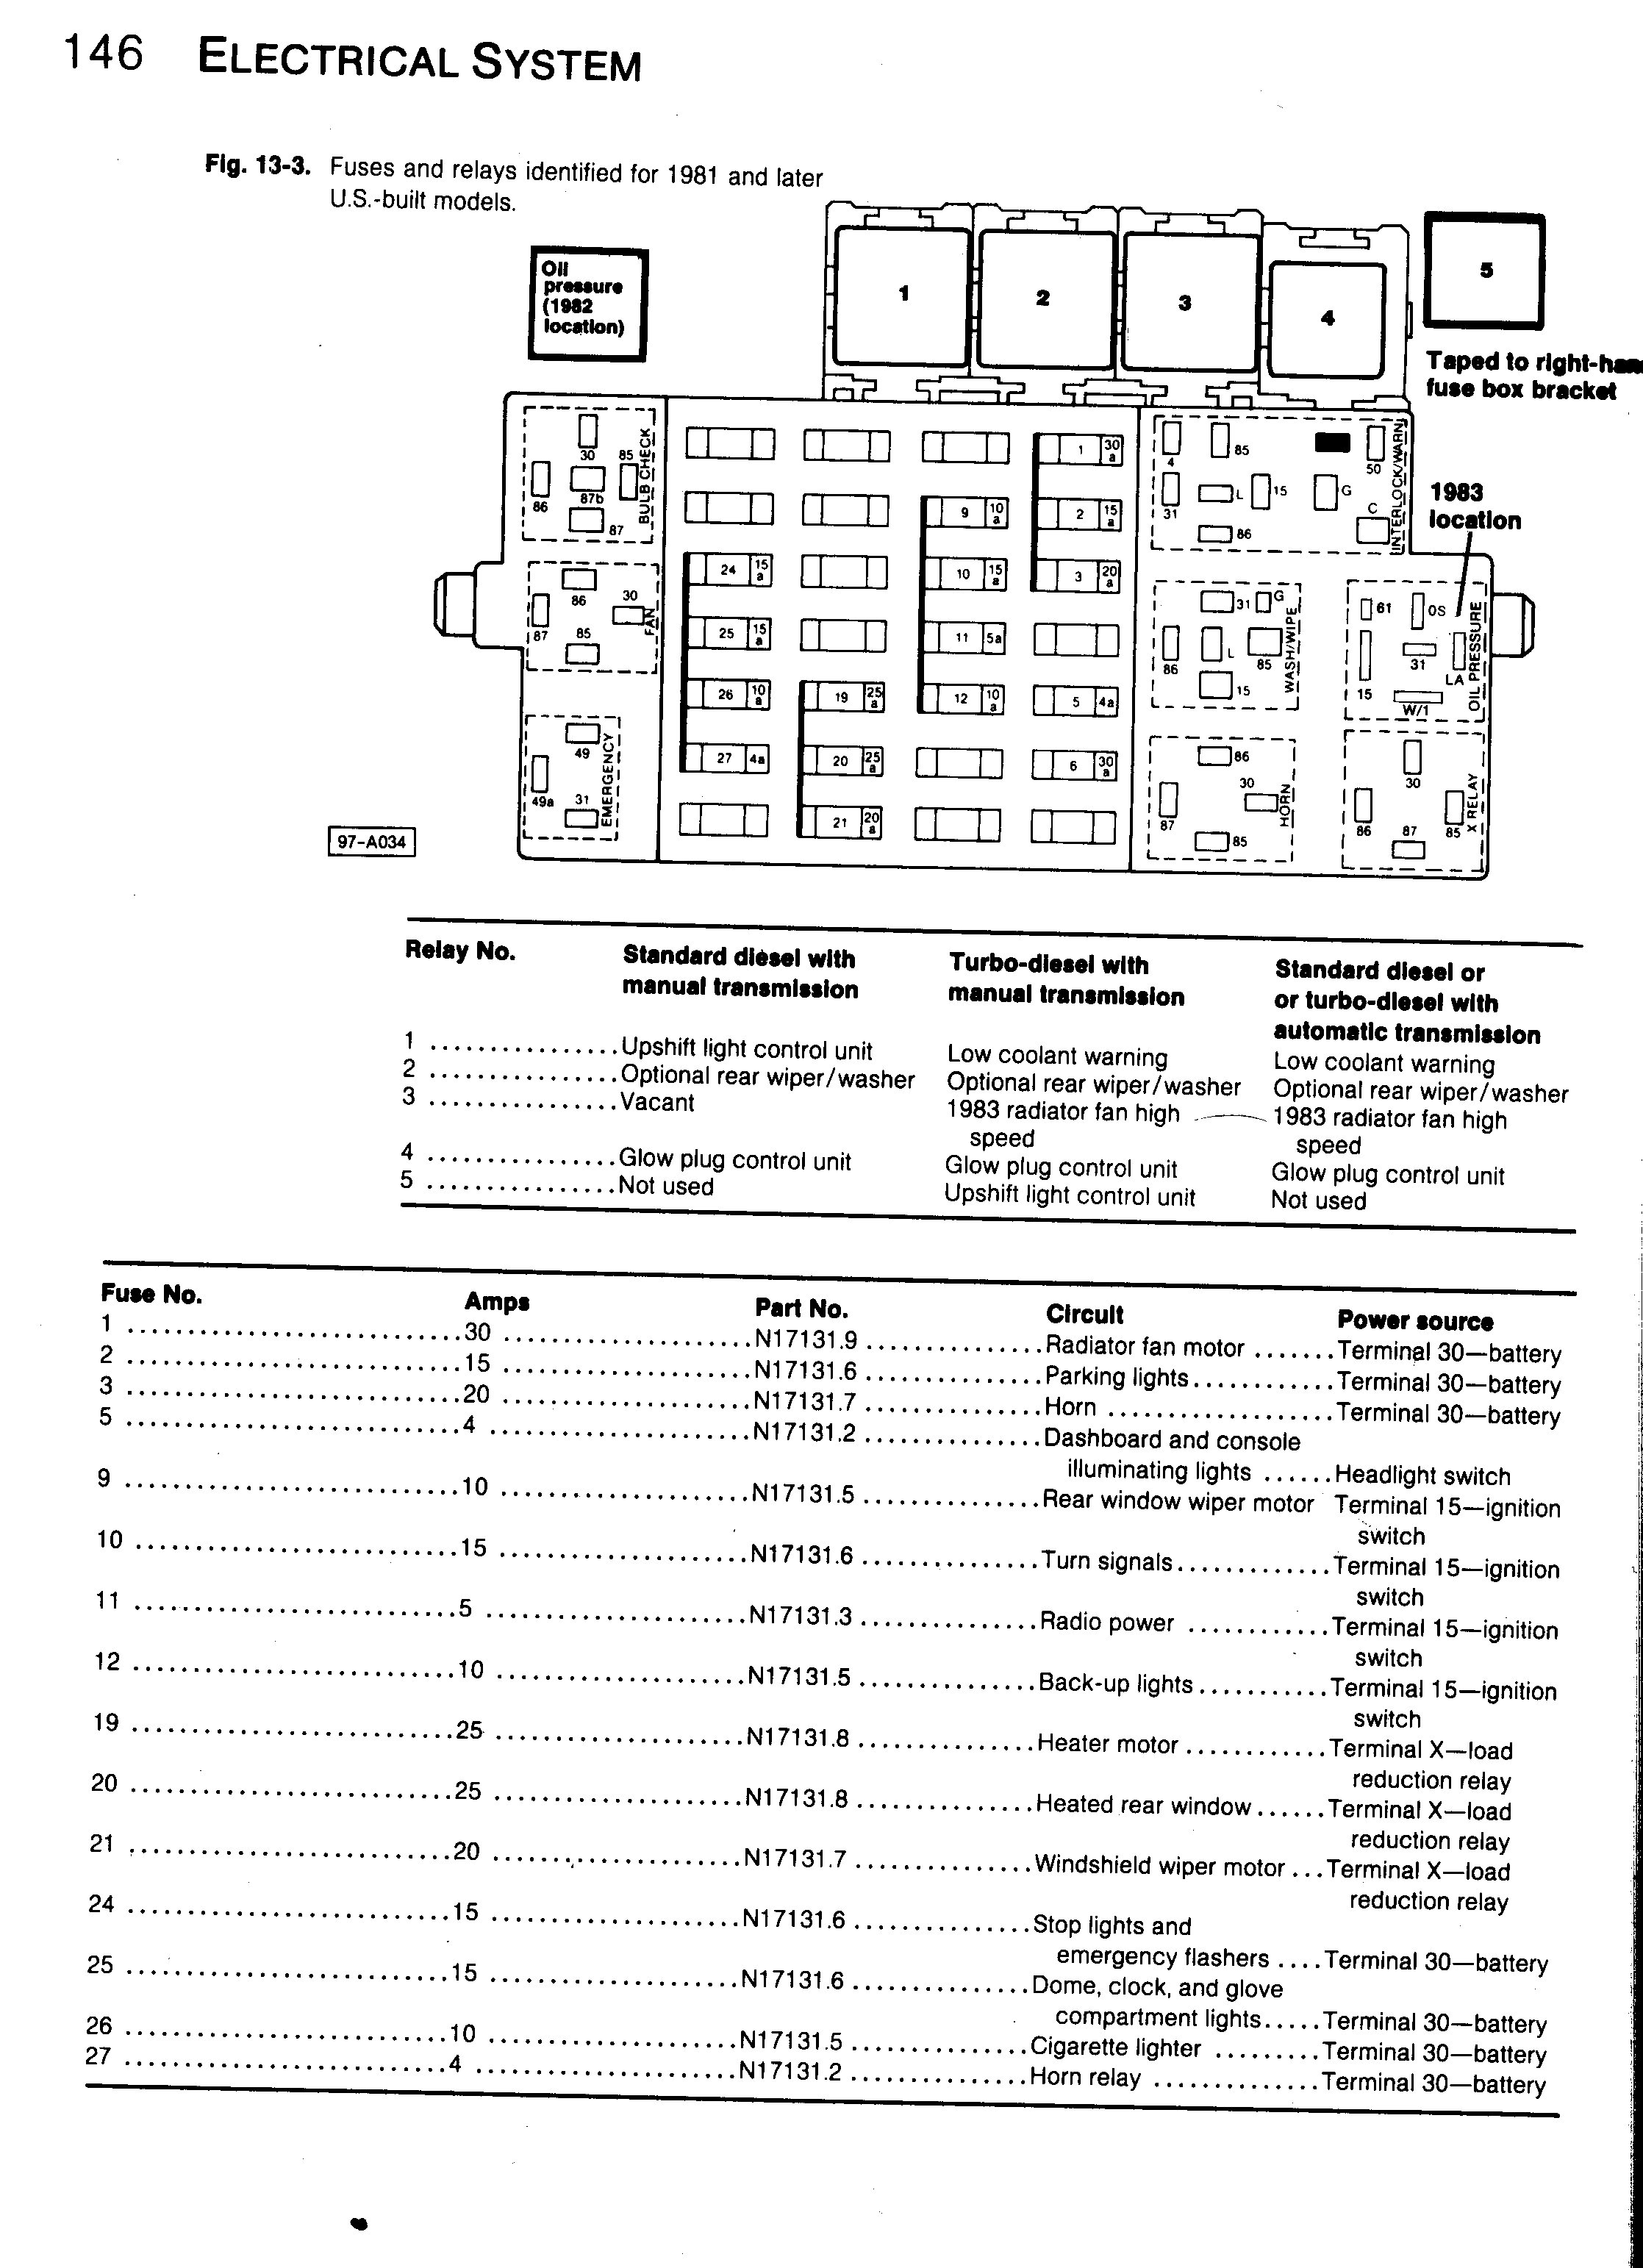 2004 Vw Beetle Fuse Box Diagram - Wiring Diagram Replace base-activity -  base-activity.miramontiseo.it | 2004 Beetle Fuse Box |  | base-activity.miramontiseo.it